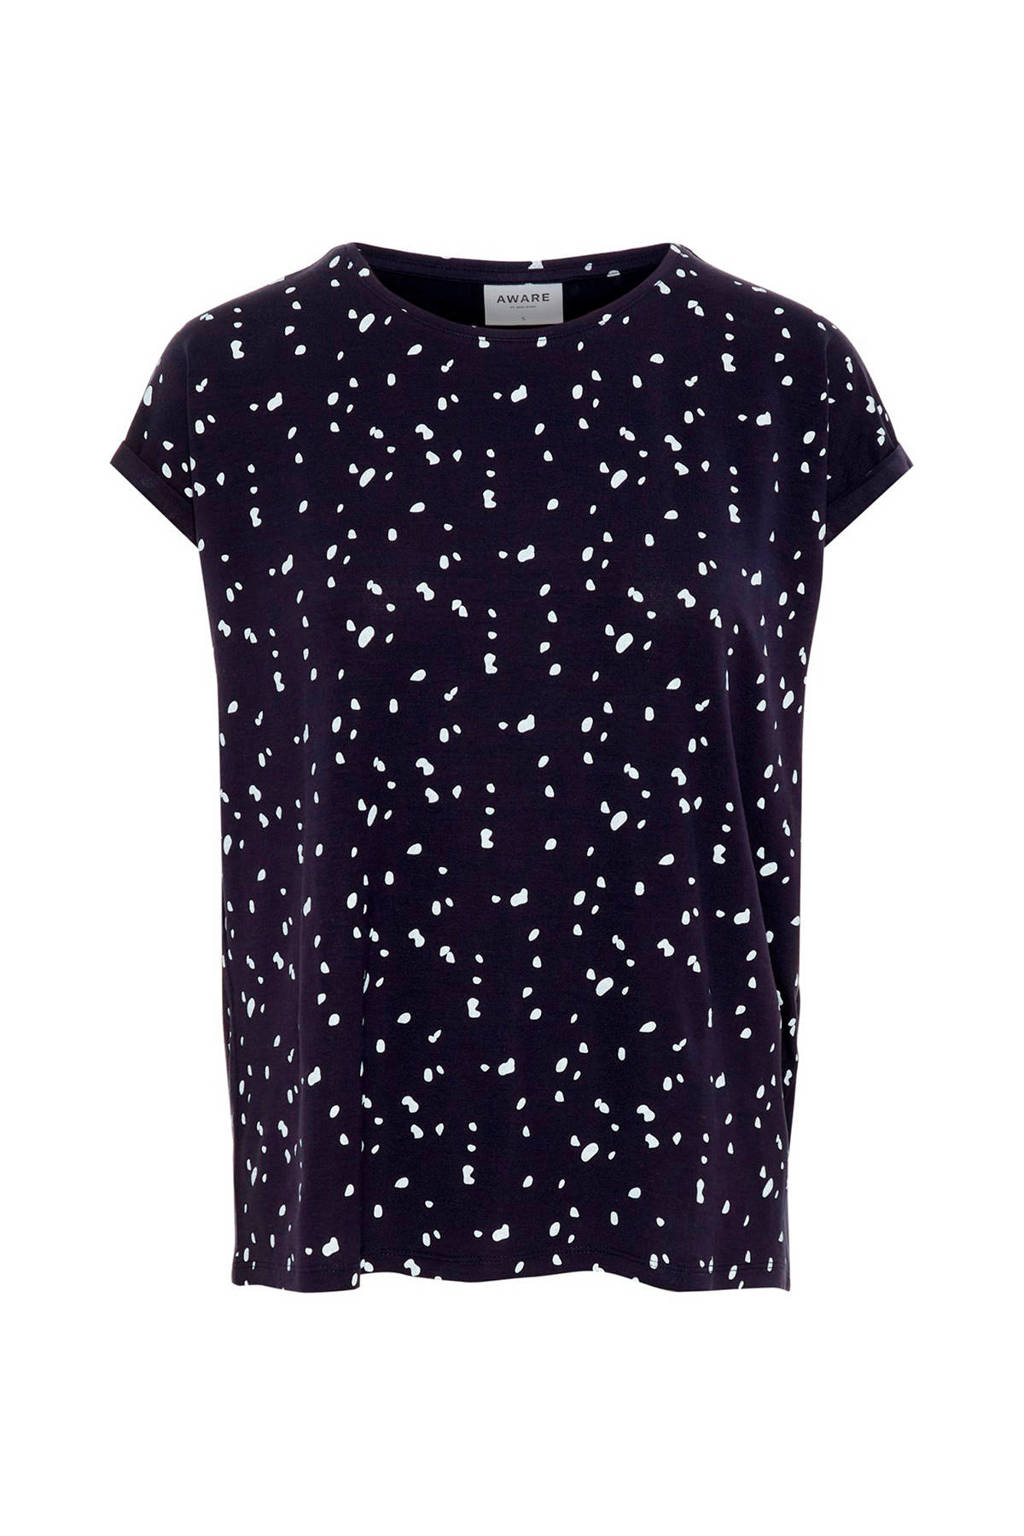 AWARE by VERO MODA lyocell top met all over print marine, Marine